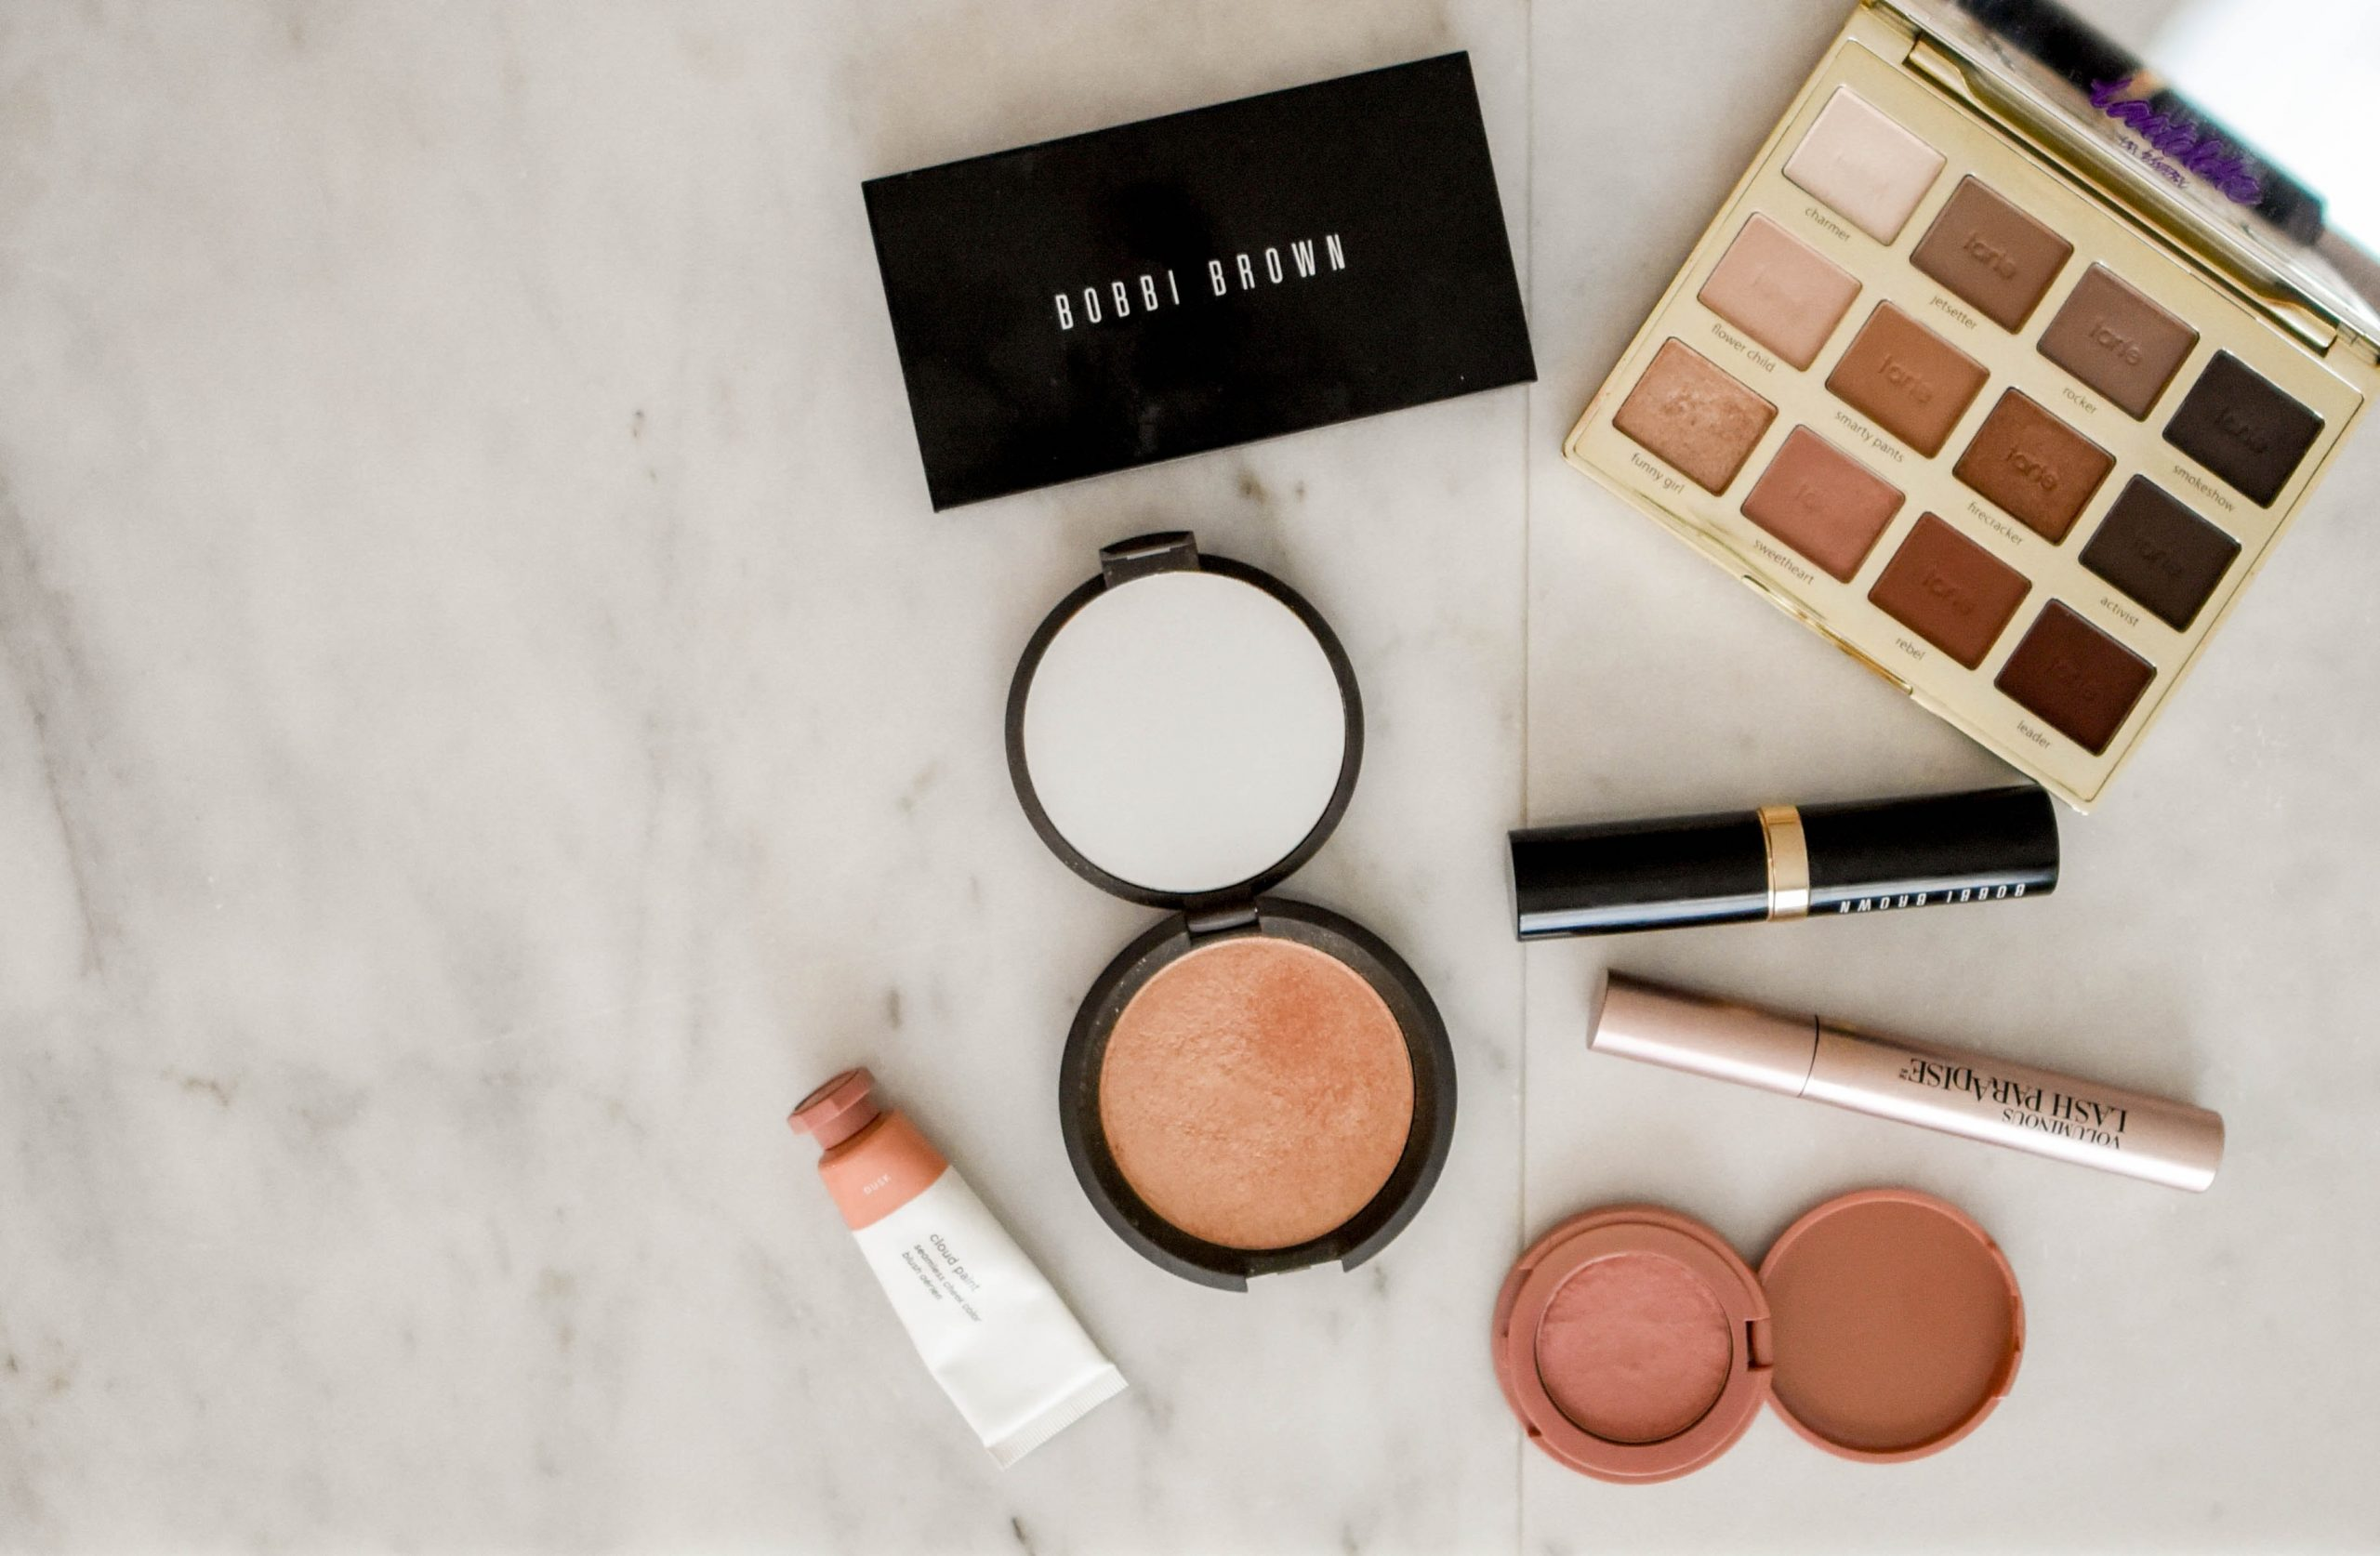 selection of makeup for healthy skin on tabletop